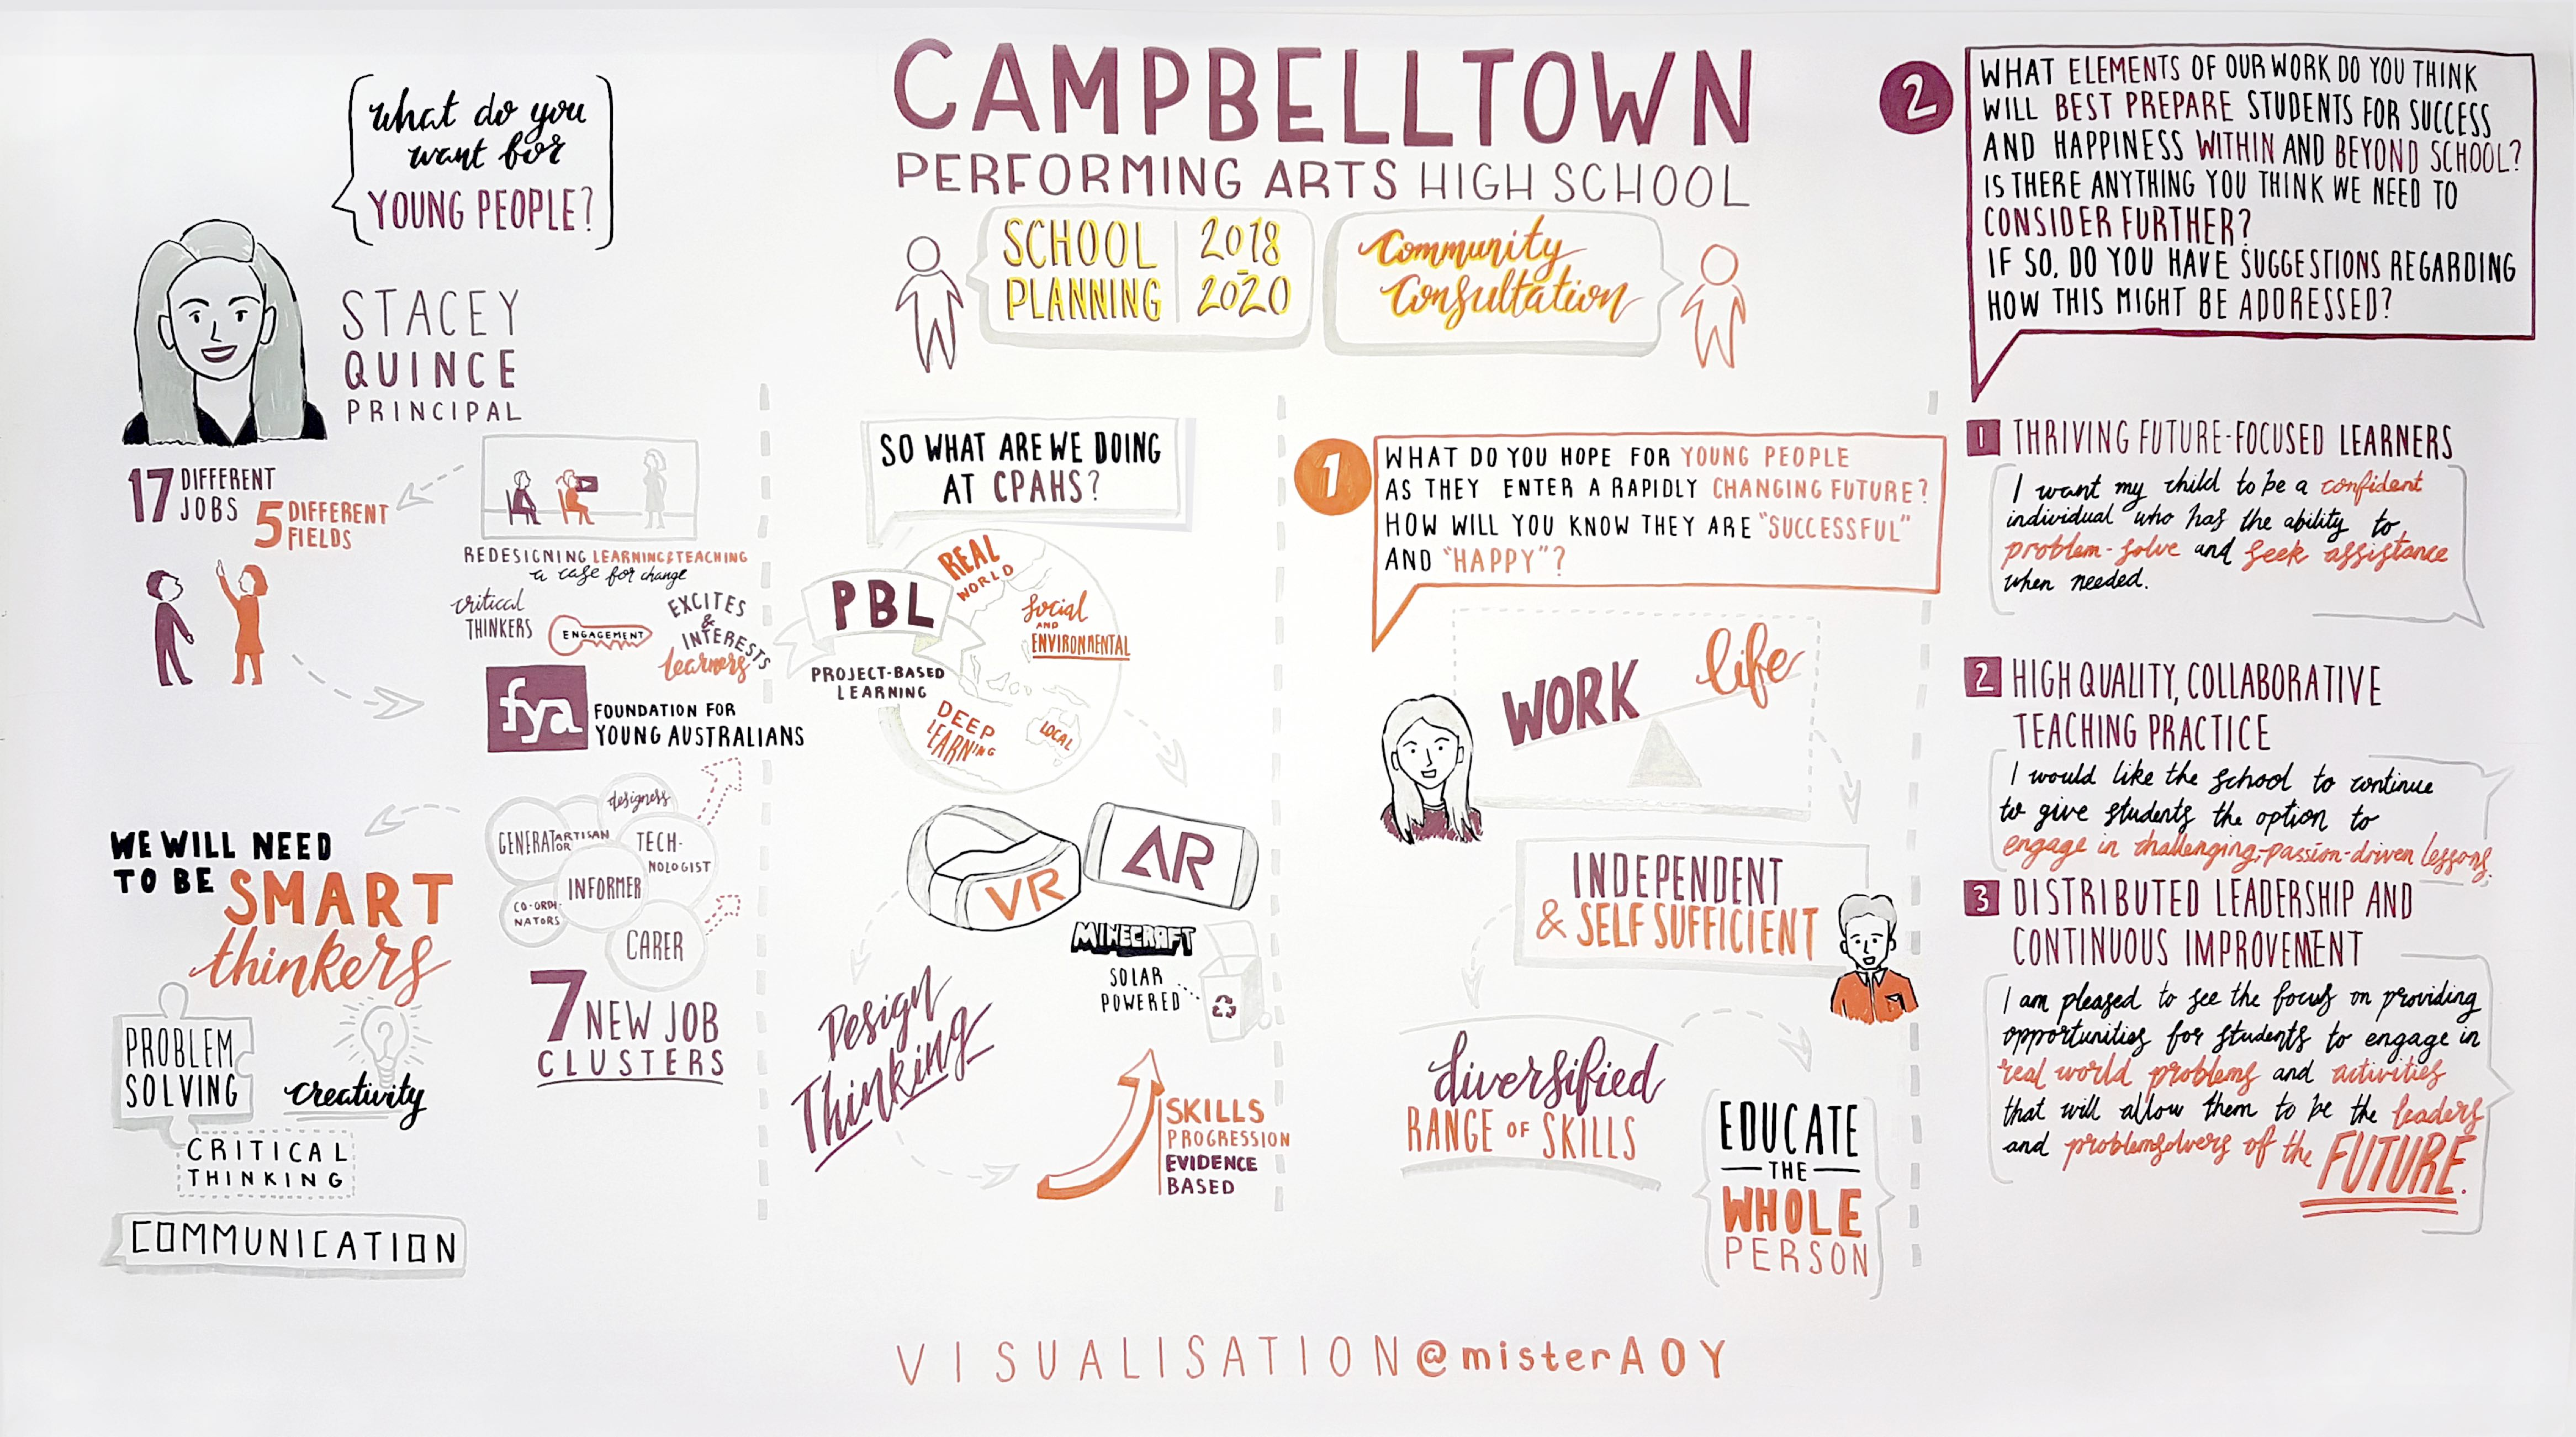 A graphic outlining key messages from a community consultation event